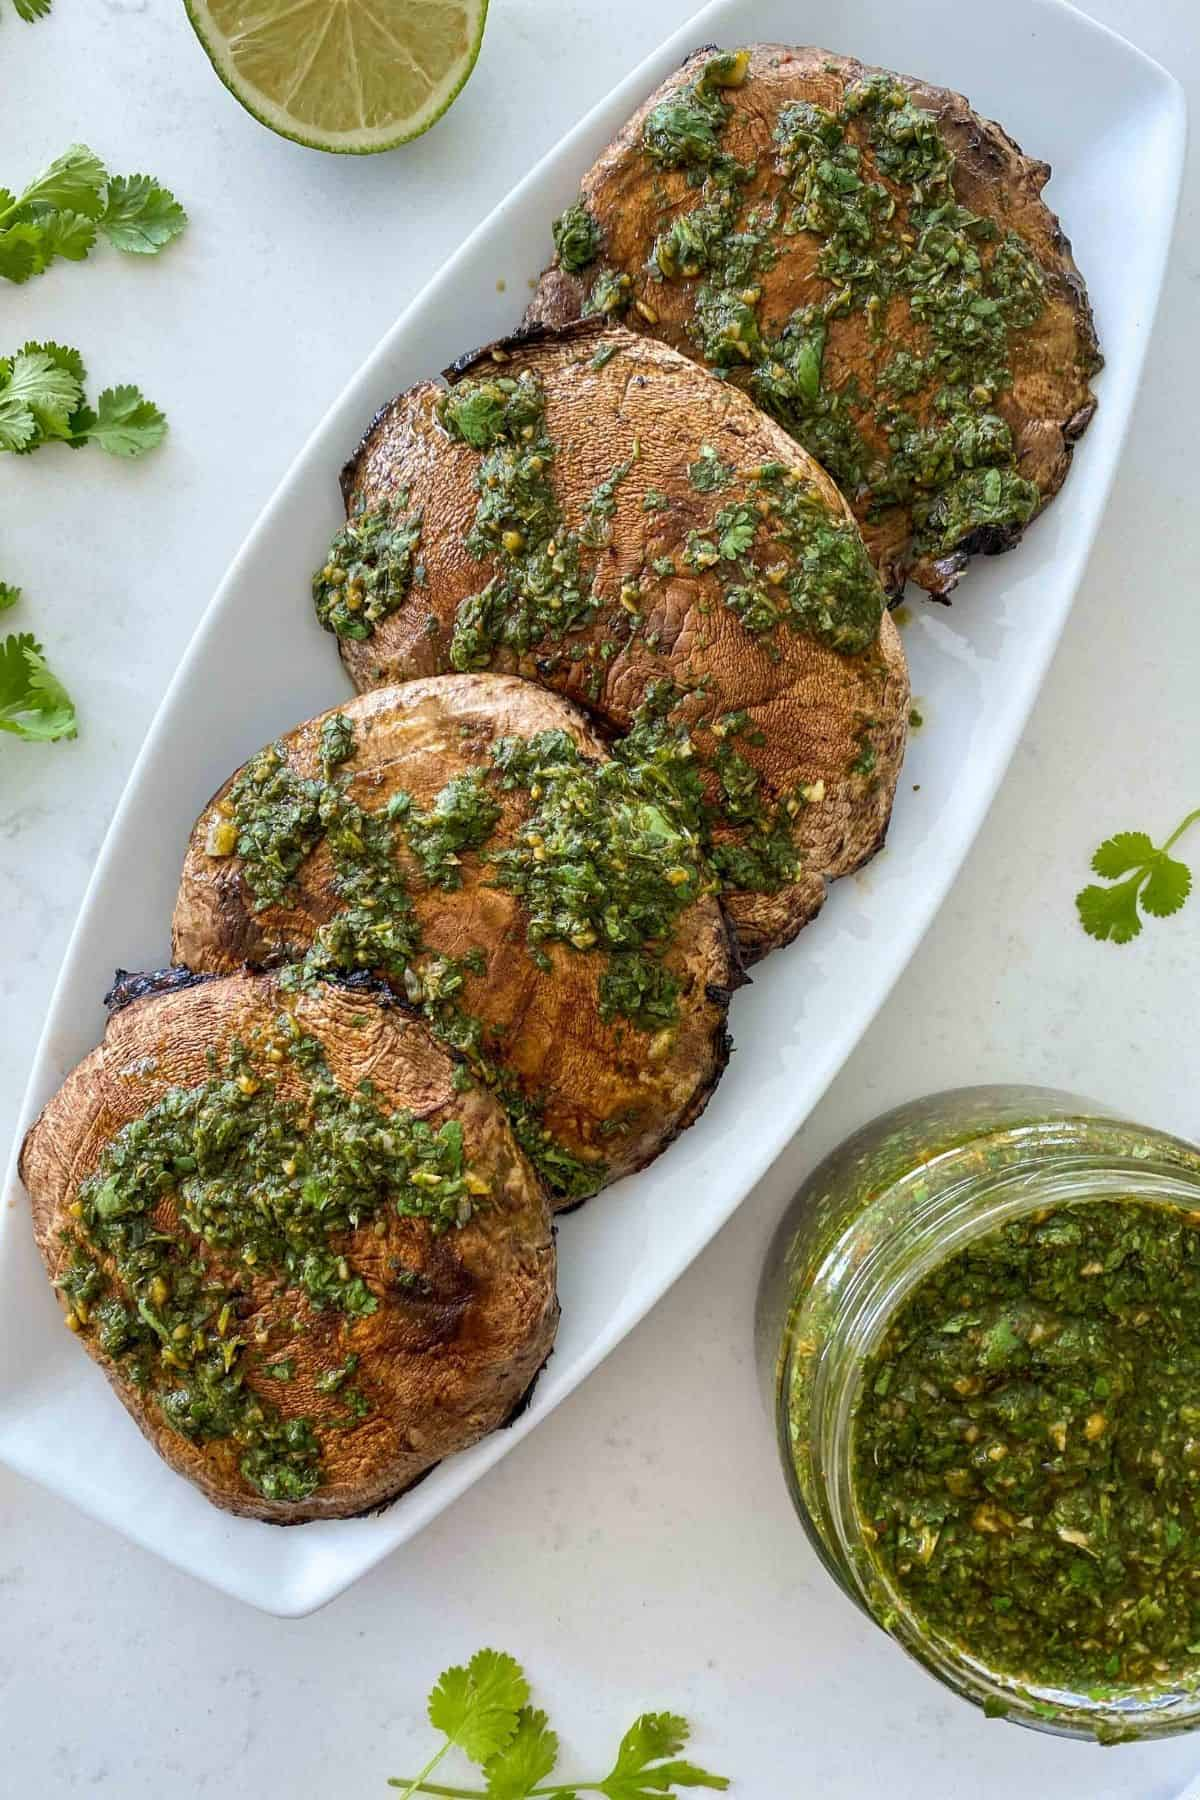 Platter of grilled portobello mushrooms with chimichurri sauce on top and jar of chimichurri beside it.